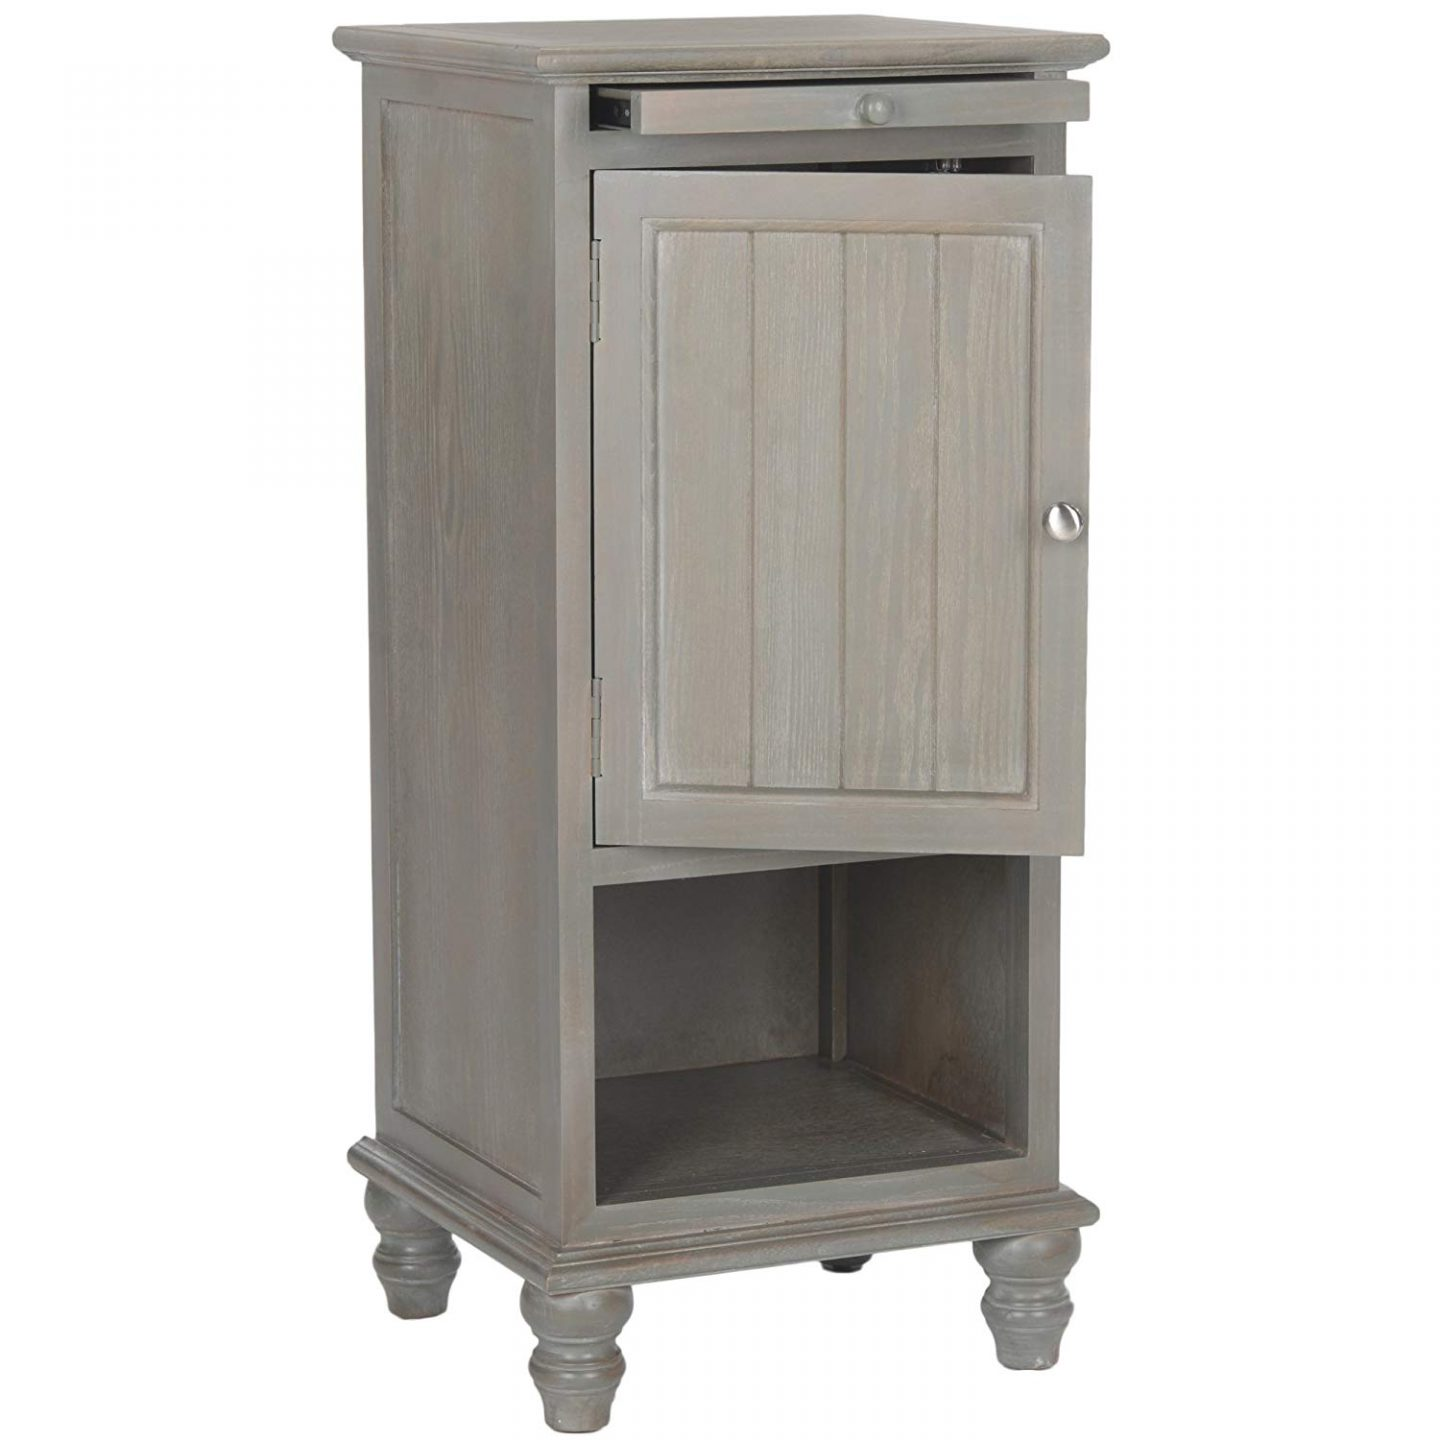 Frech Grey Side Table. French Country Furniture Finds. Because European country and French farmhouse style is easy to love. Rustic elegant charm is lovely indeed.